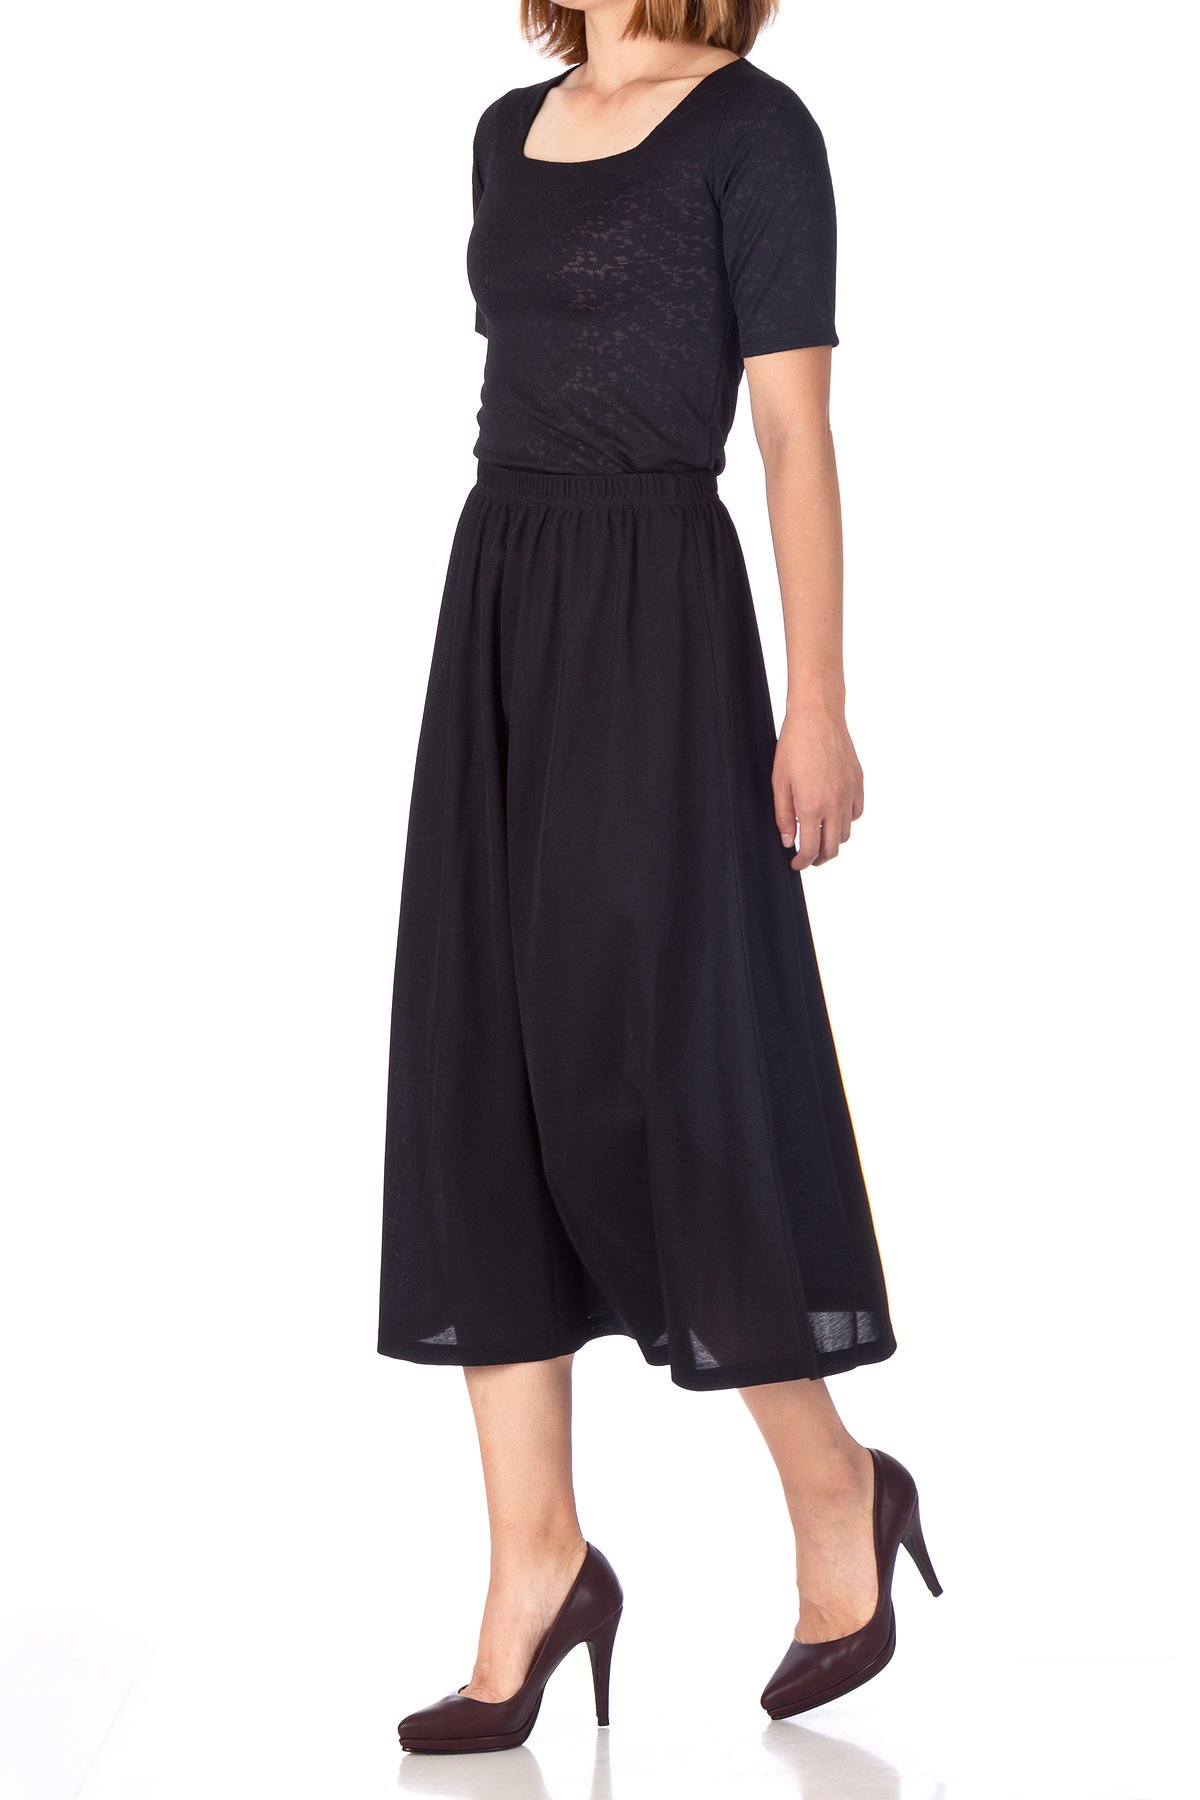 Brilliant Elastic Waist Full Flared Long Skirt Black 01